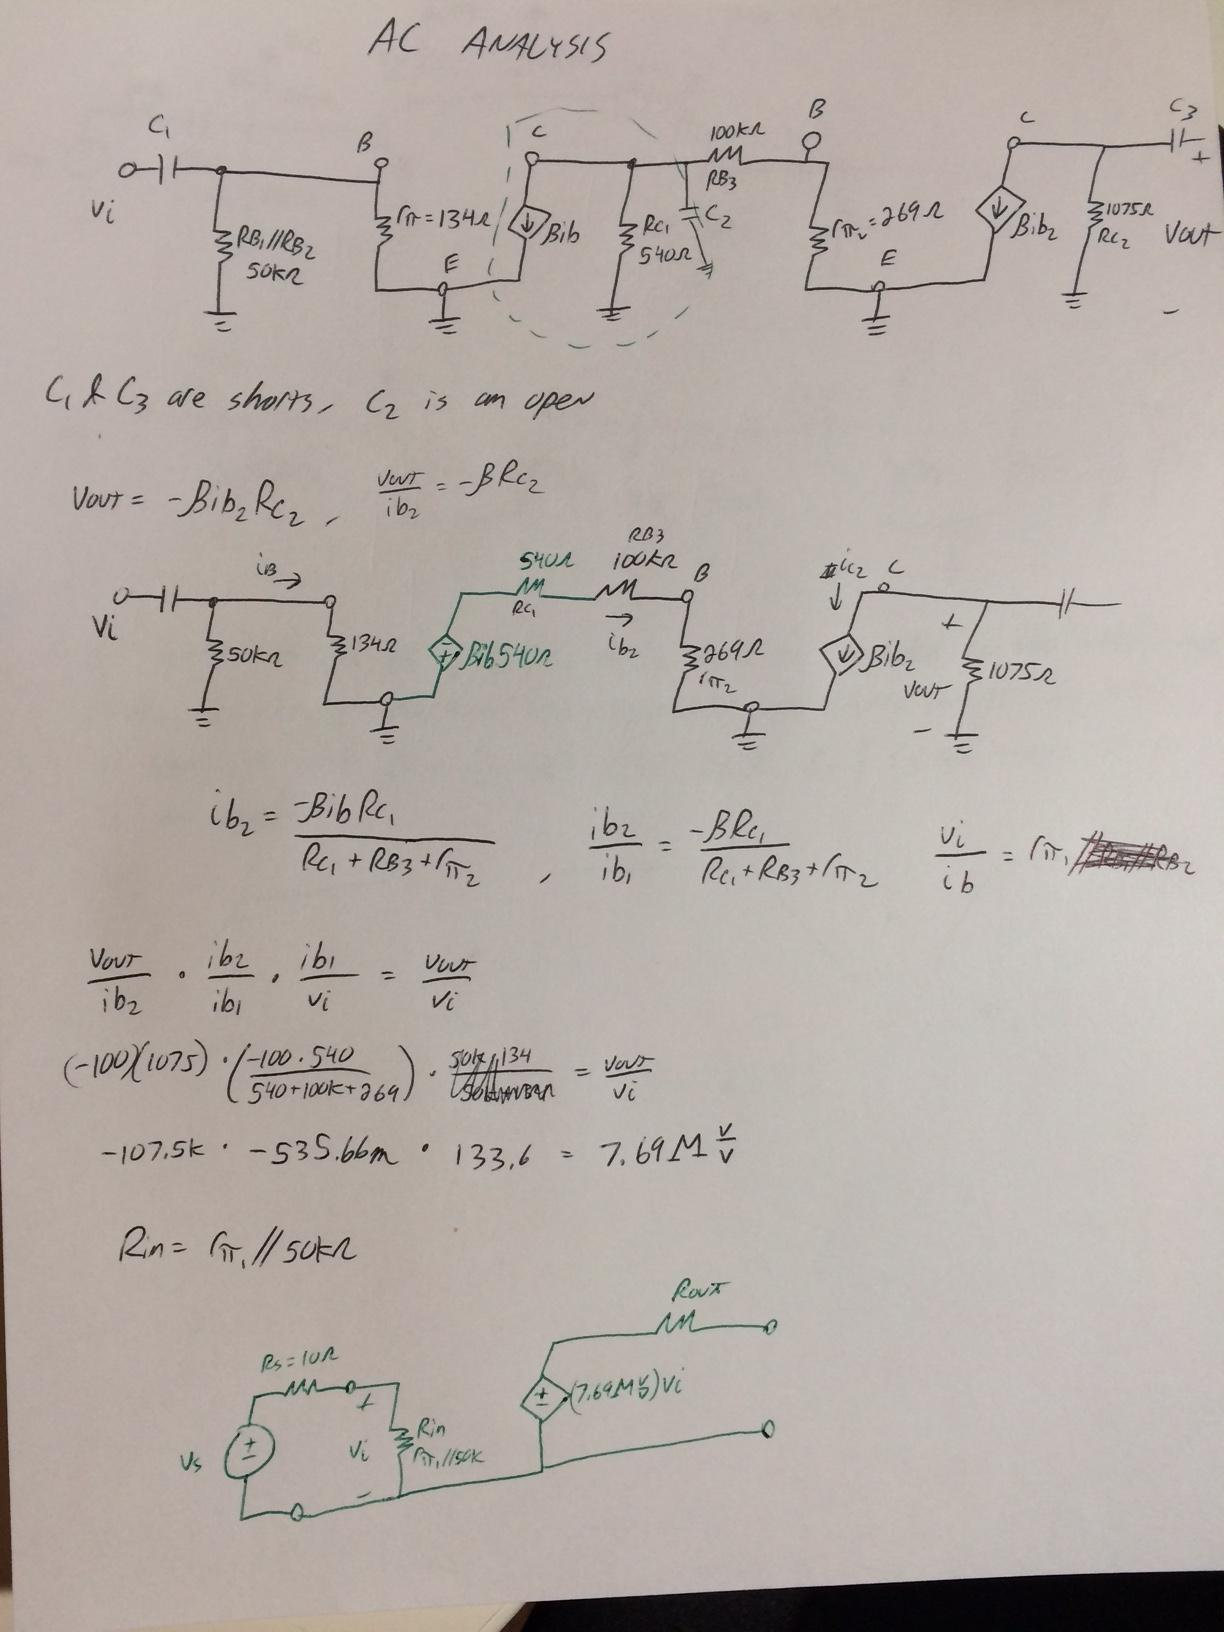 Do All Transistor Latch Circuits That Ive Seen Use Two Transistors